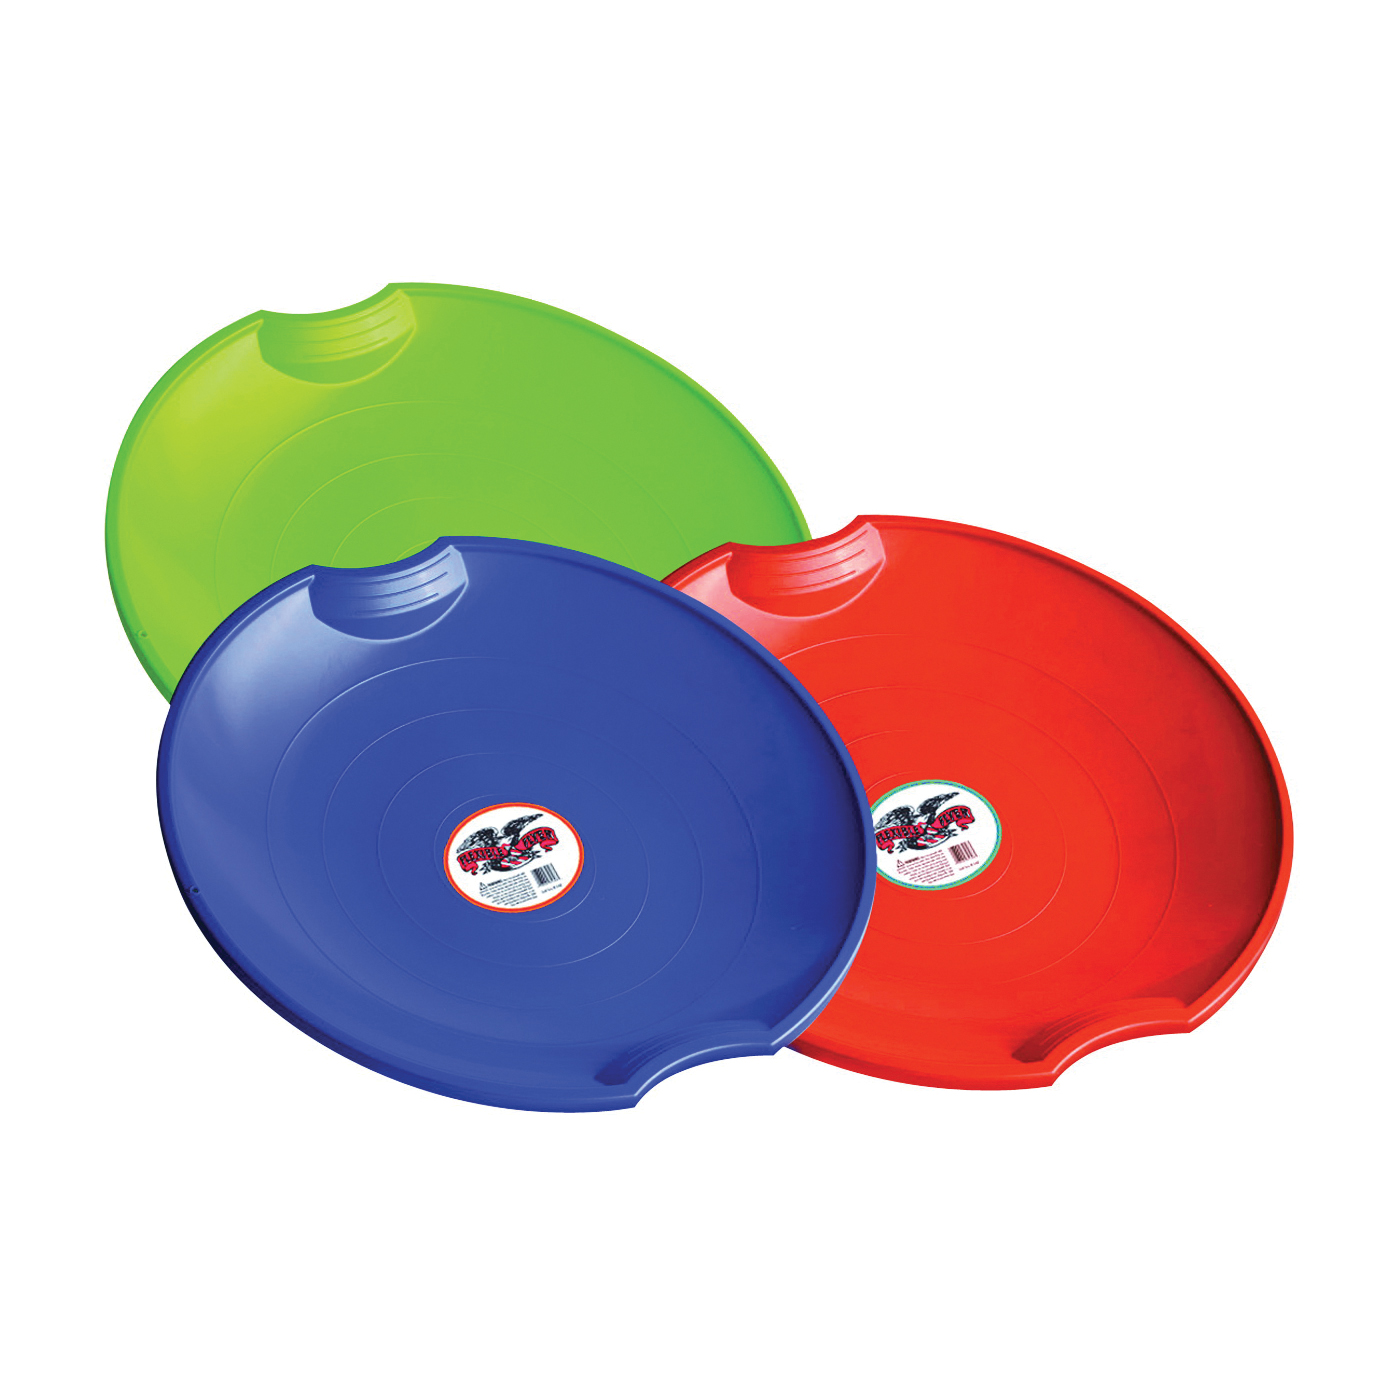 Picture of PARICON 626 Flying Saucer, 4-Years Old and Up Capacity, Plastic, Blue/Lime Green/Orange